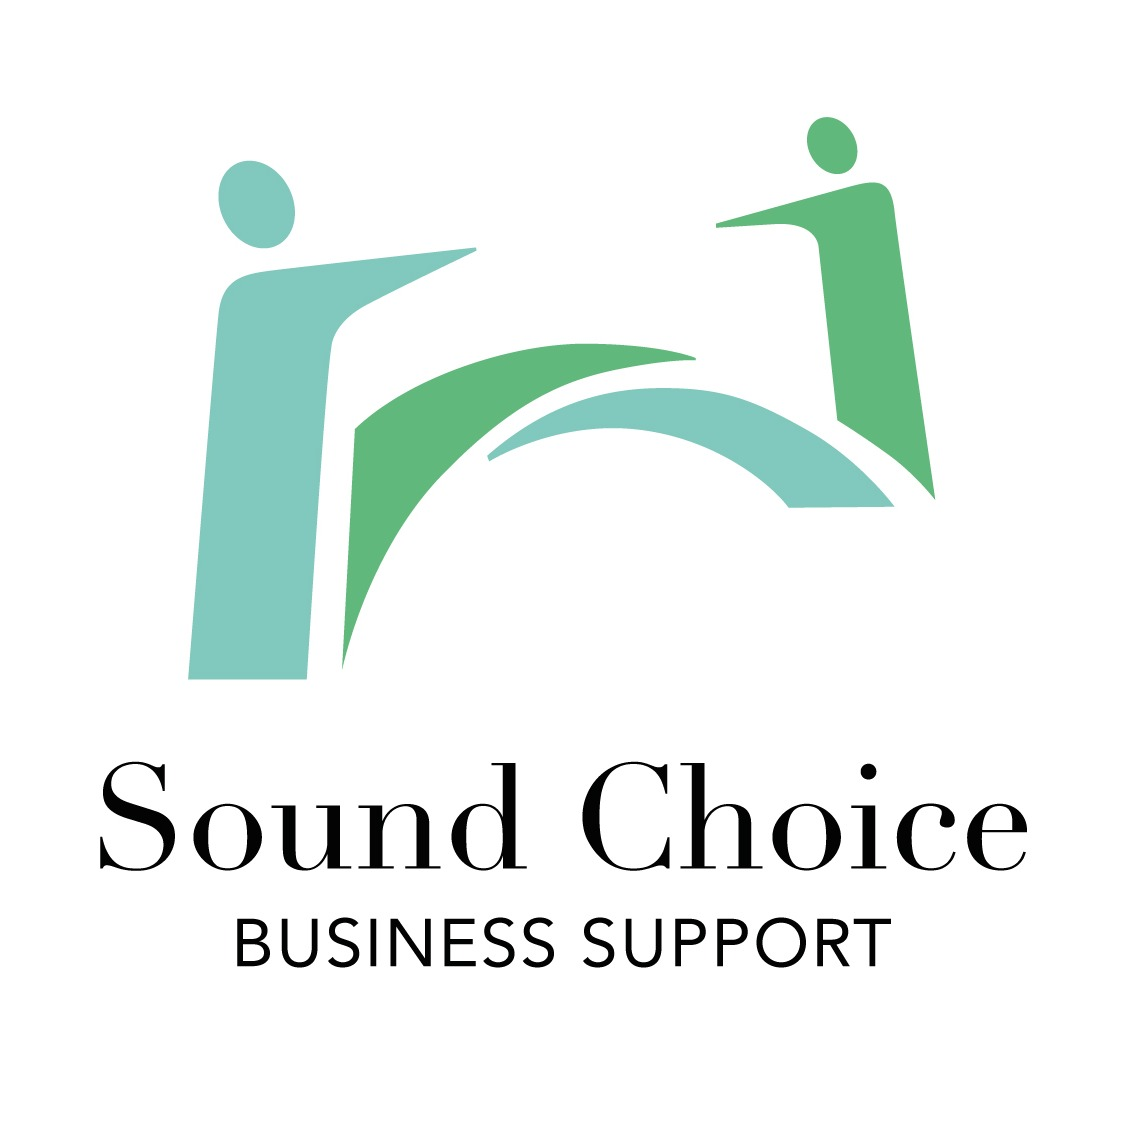 Sound Choice Business Support